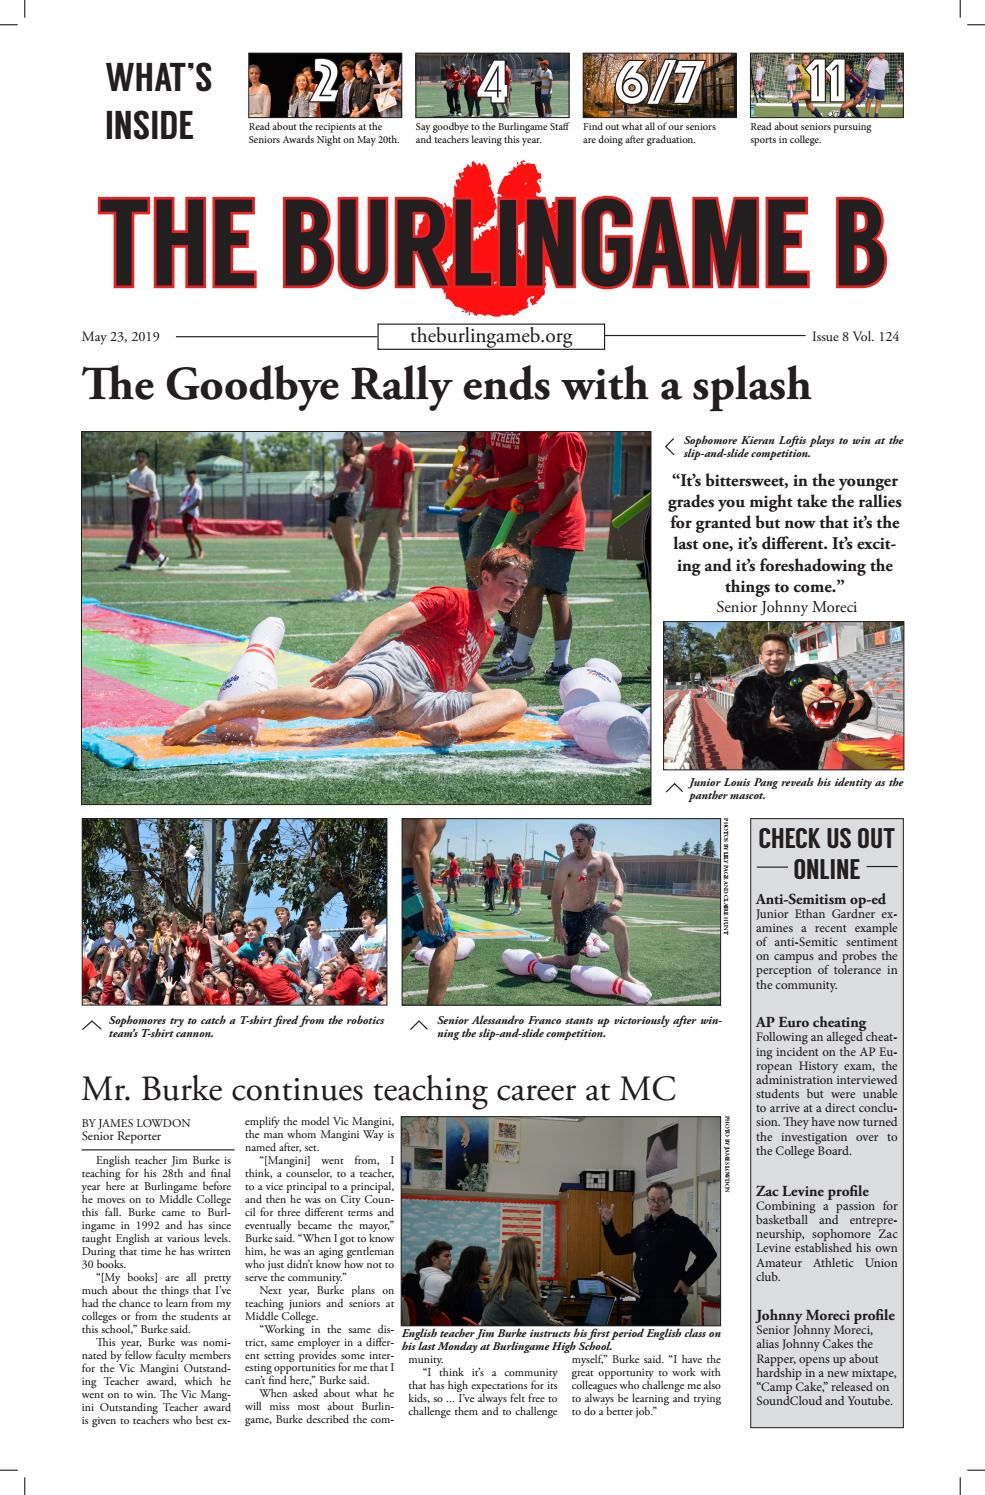 May Issue By The Burlingame B Newspaper Issuu